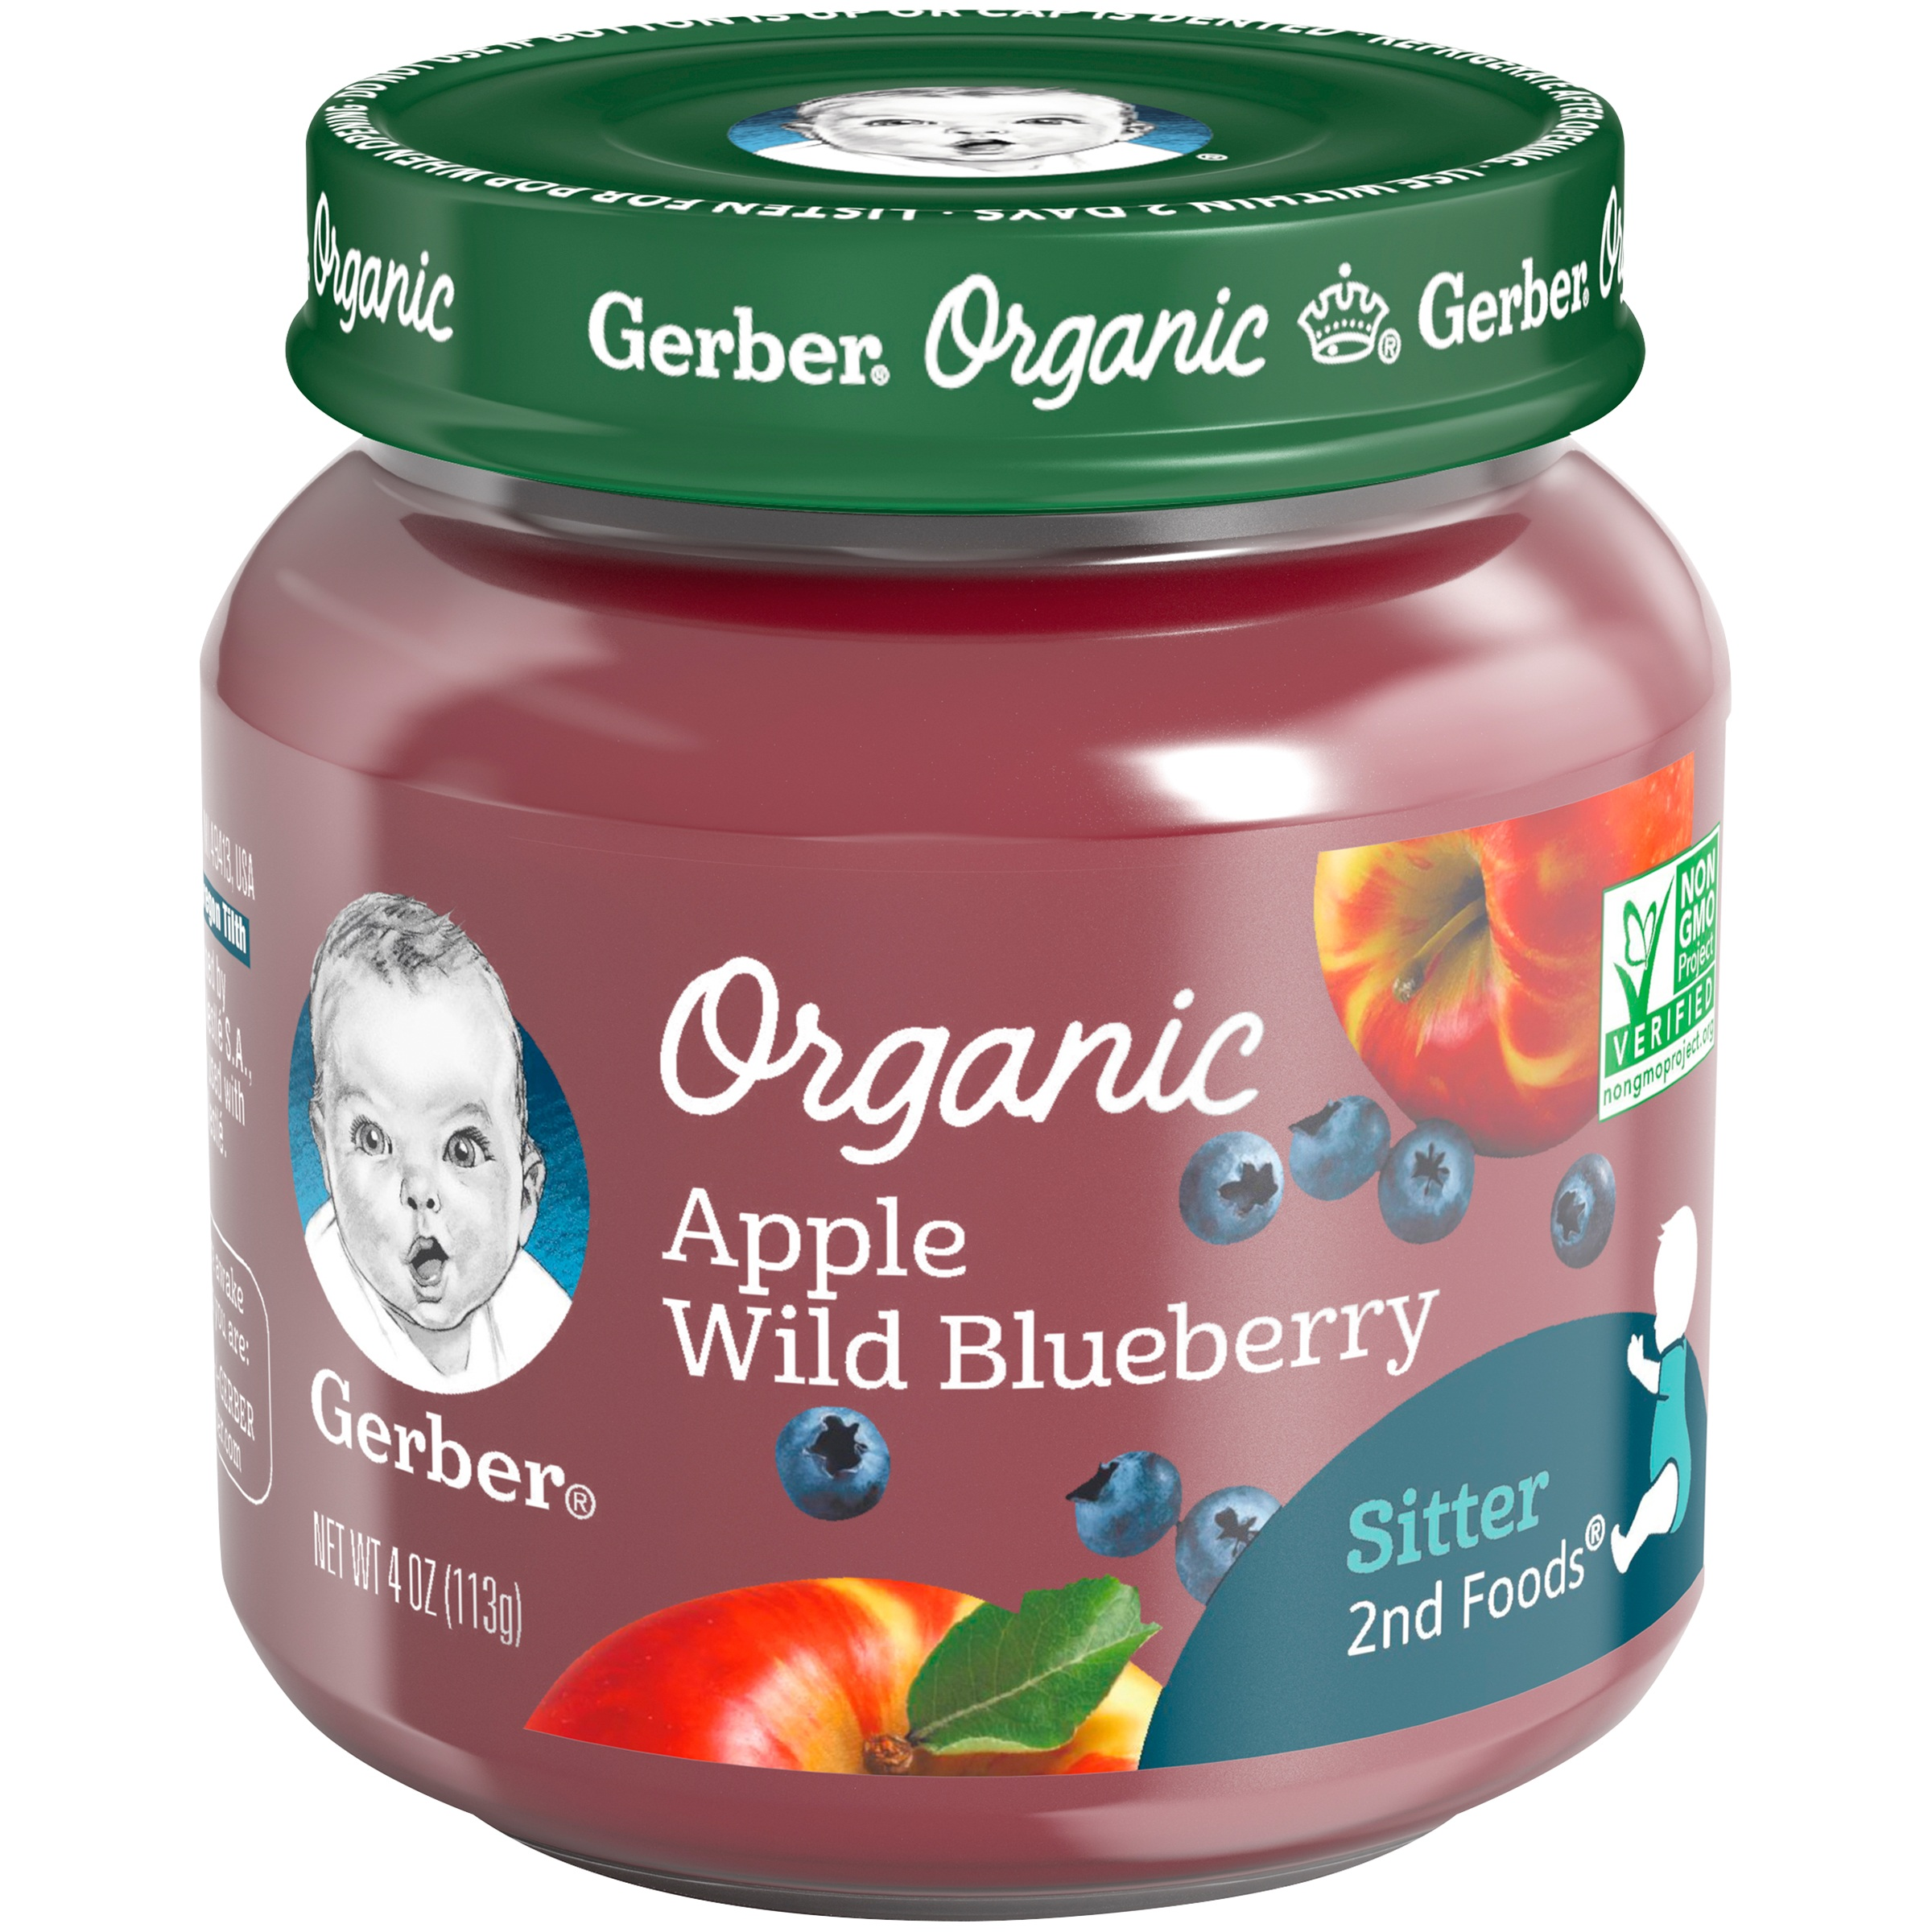 Gerber Organic 2nd Foods Apple Wild Blueberry Baby Food, 4 oz. Glass Jar (Pack of 6)